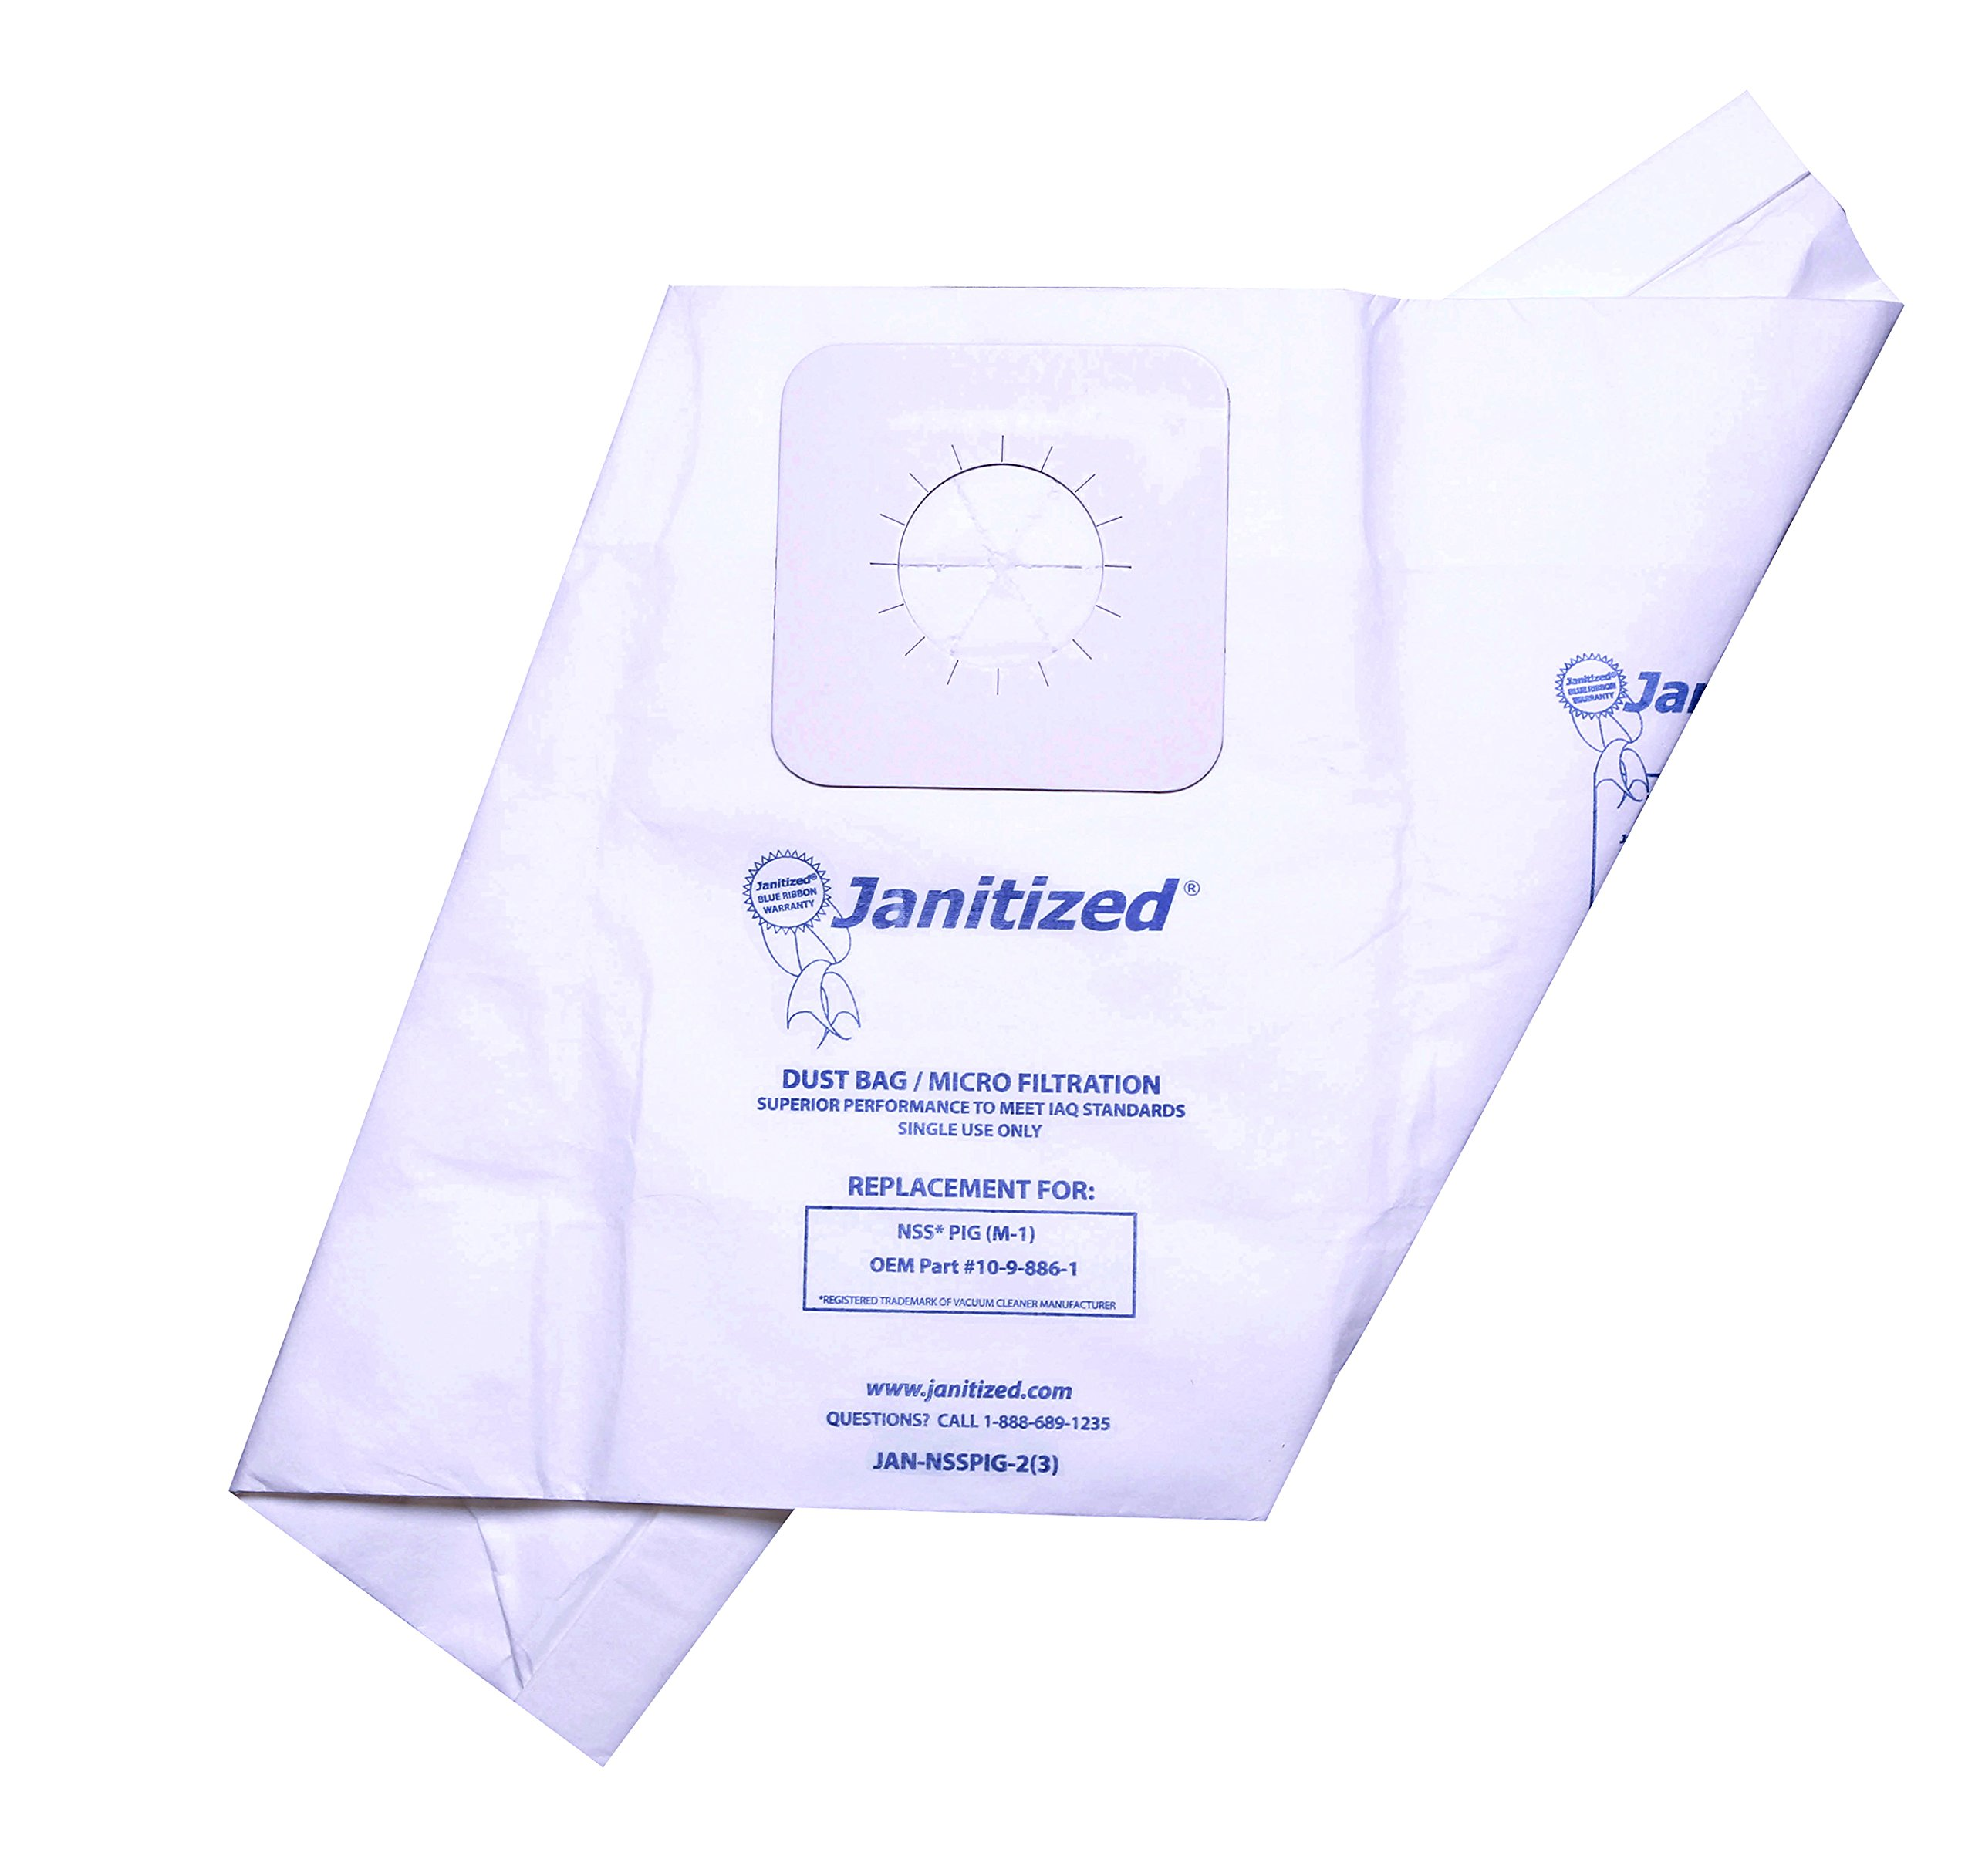 Janitized JAN-NSSPIG-2(3) Premium Replacement Commercial Vacuum Paper Bag for NSS M-1 ''Pig'' Portable Vacuum Cleaner, OEM#10-9-886-1 (Pack of 3)